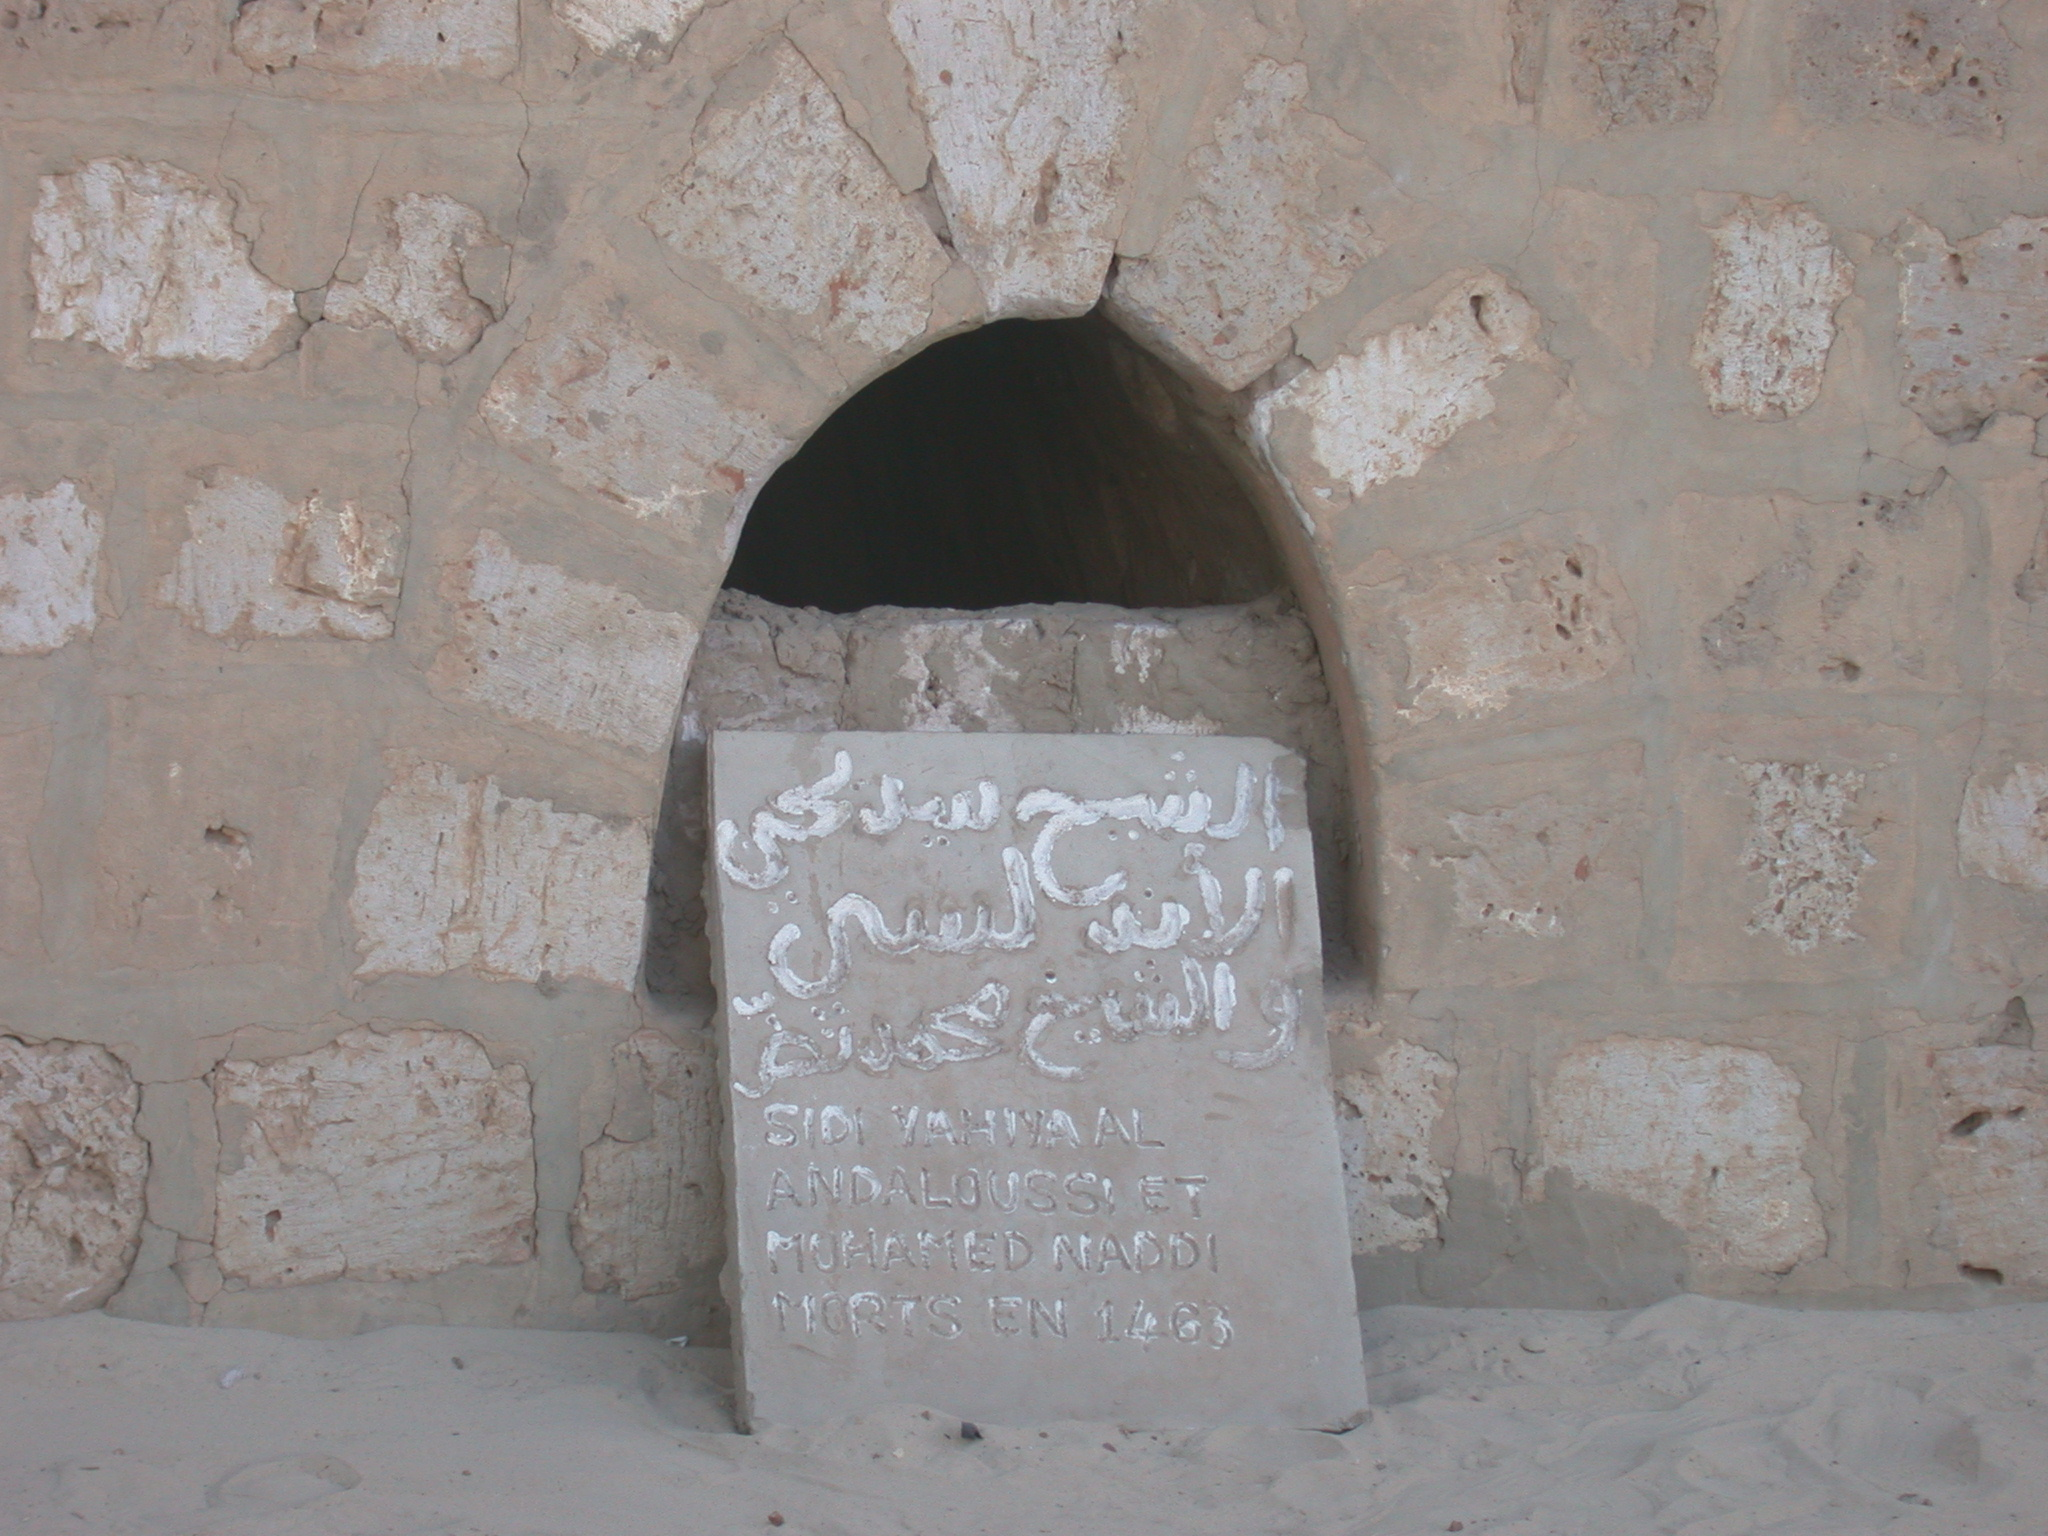 Possibly Burial Marker of 1463 Grave of Sidi Yahiya al Andaloussi and Mohamed Naddi, Sidi Yahia Mosque, Timbuktu, Mali